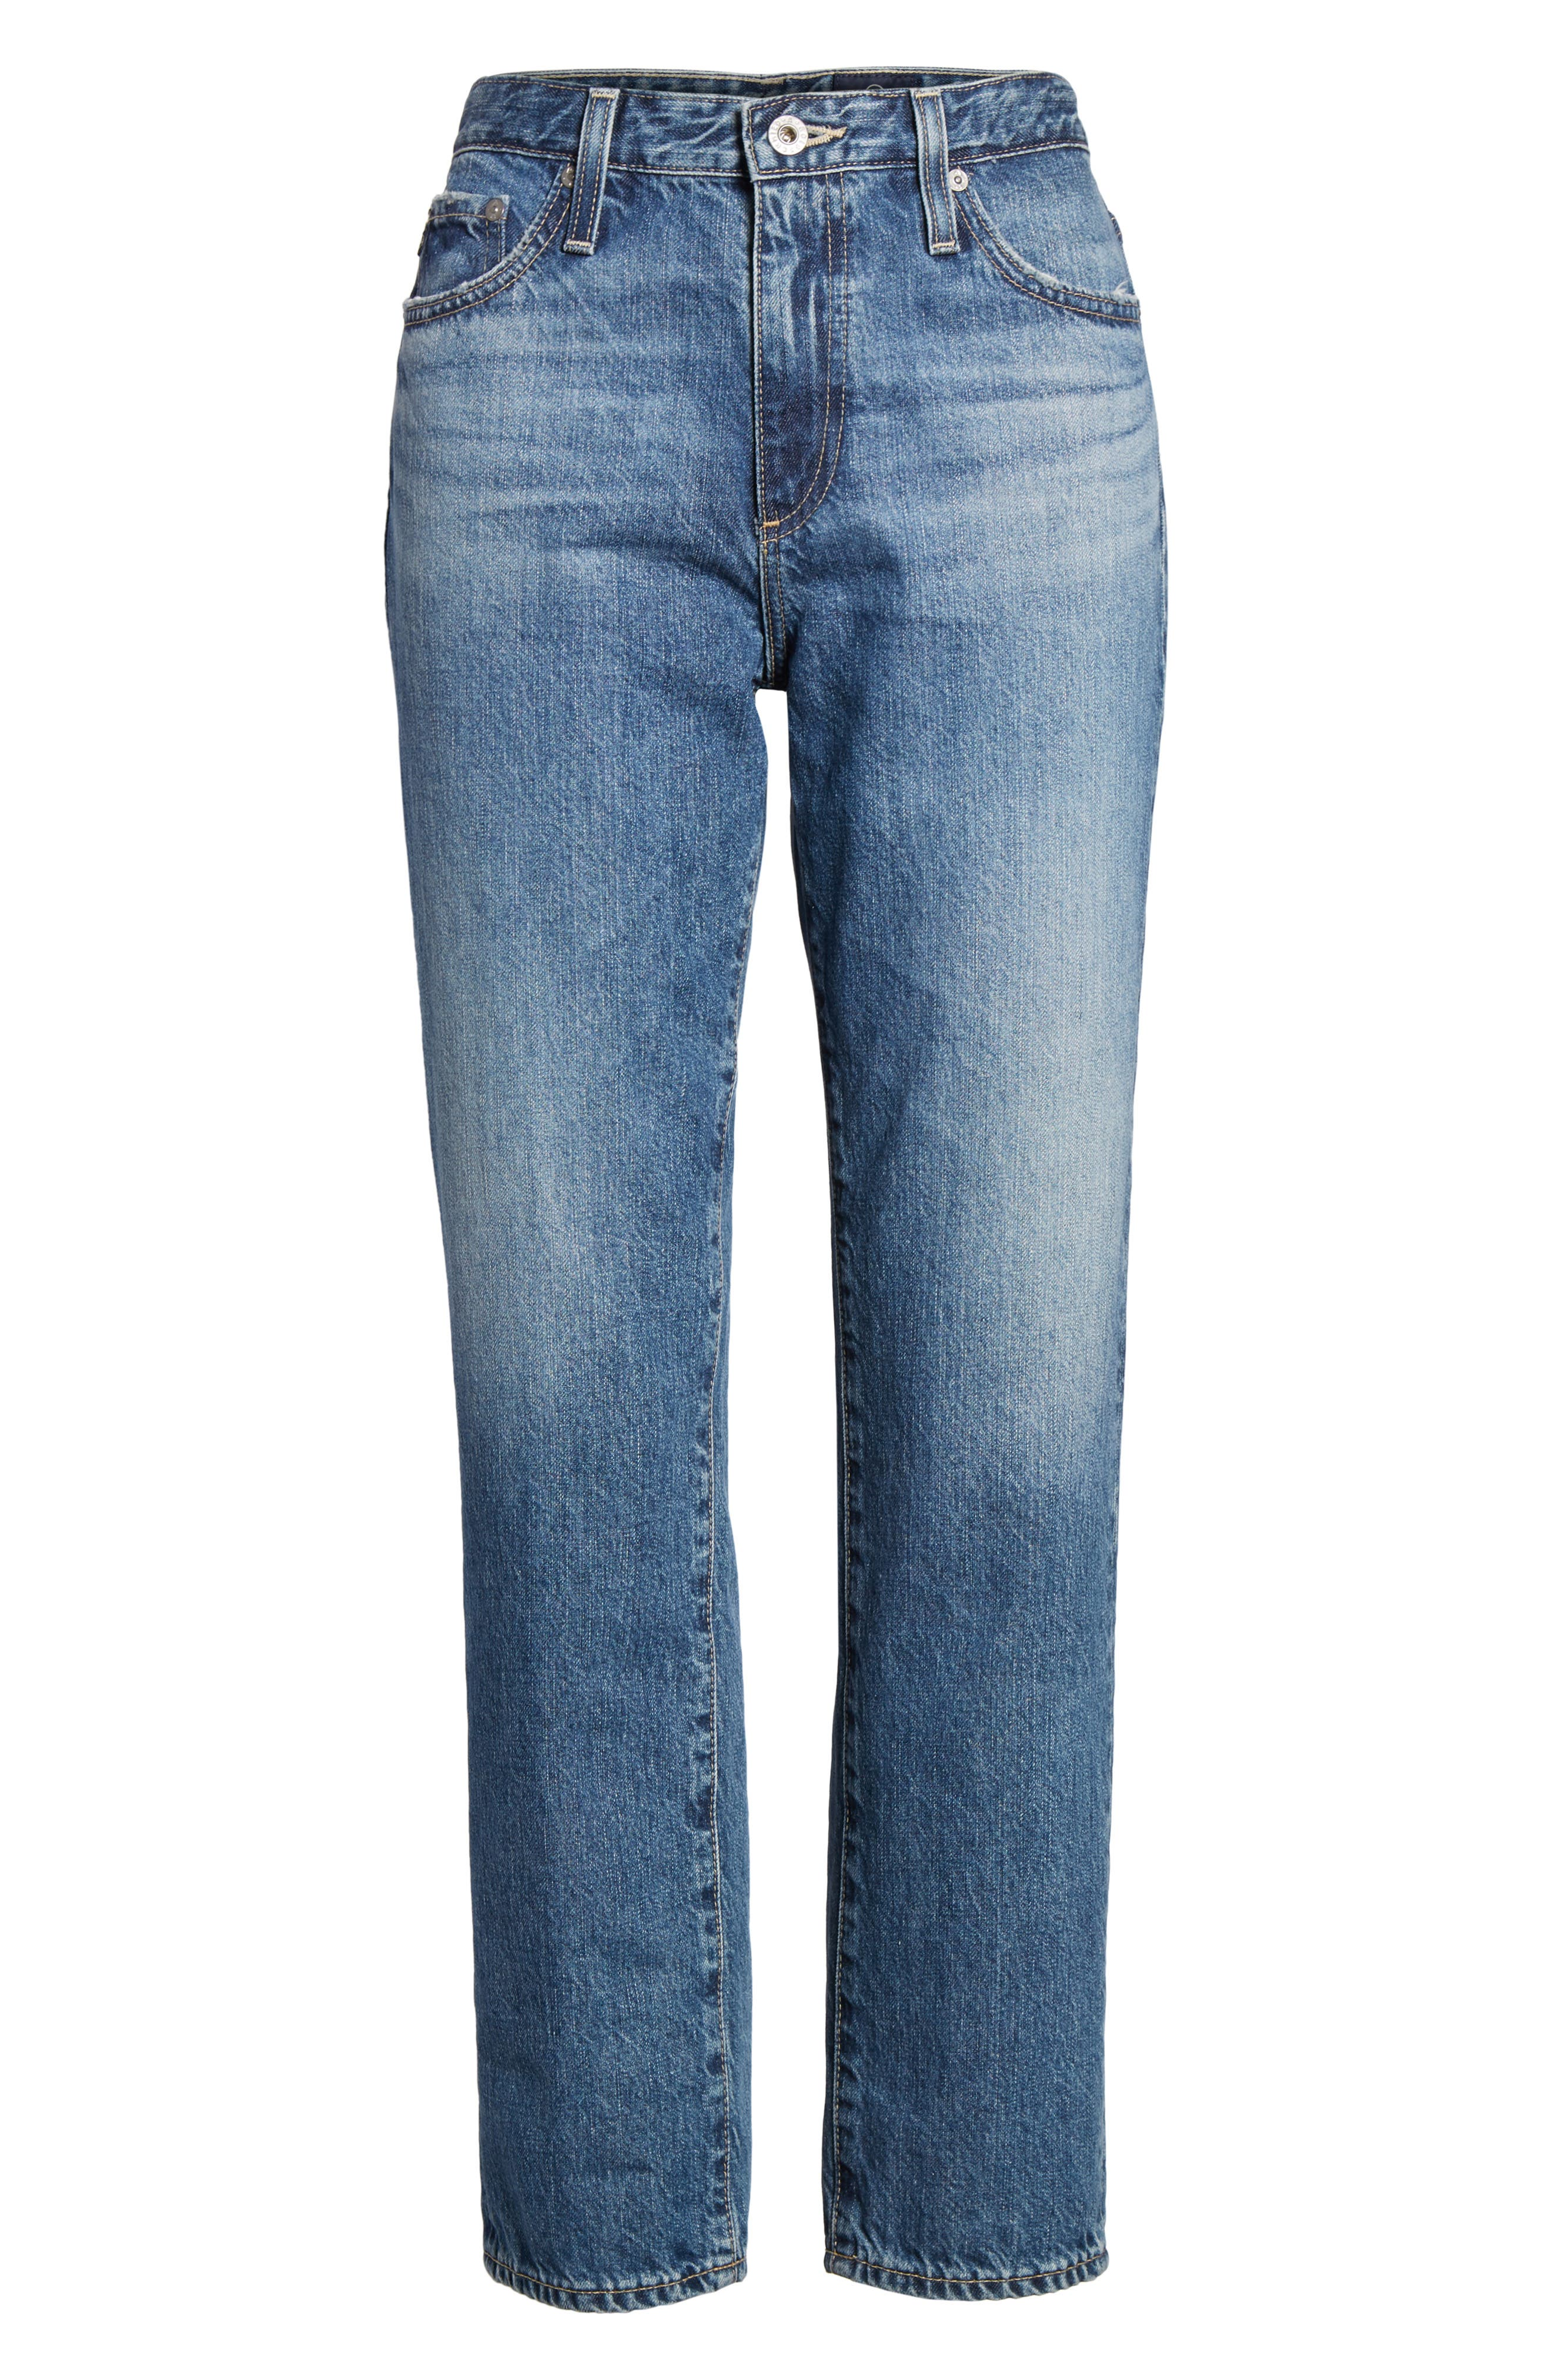 Isabelle High Waist Straight Leg Crop Jeans,                             Alternate thumbnail 7, color,                             436